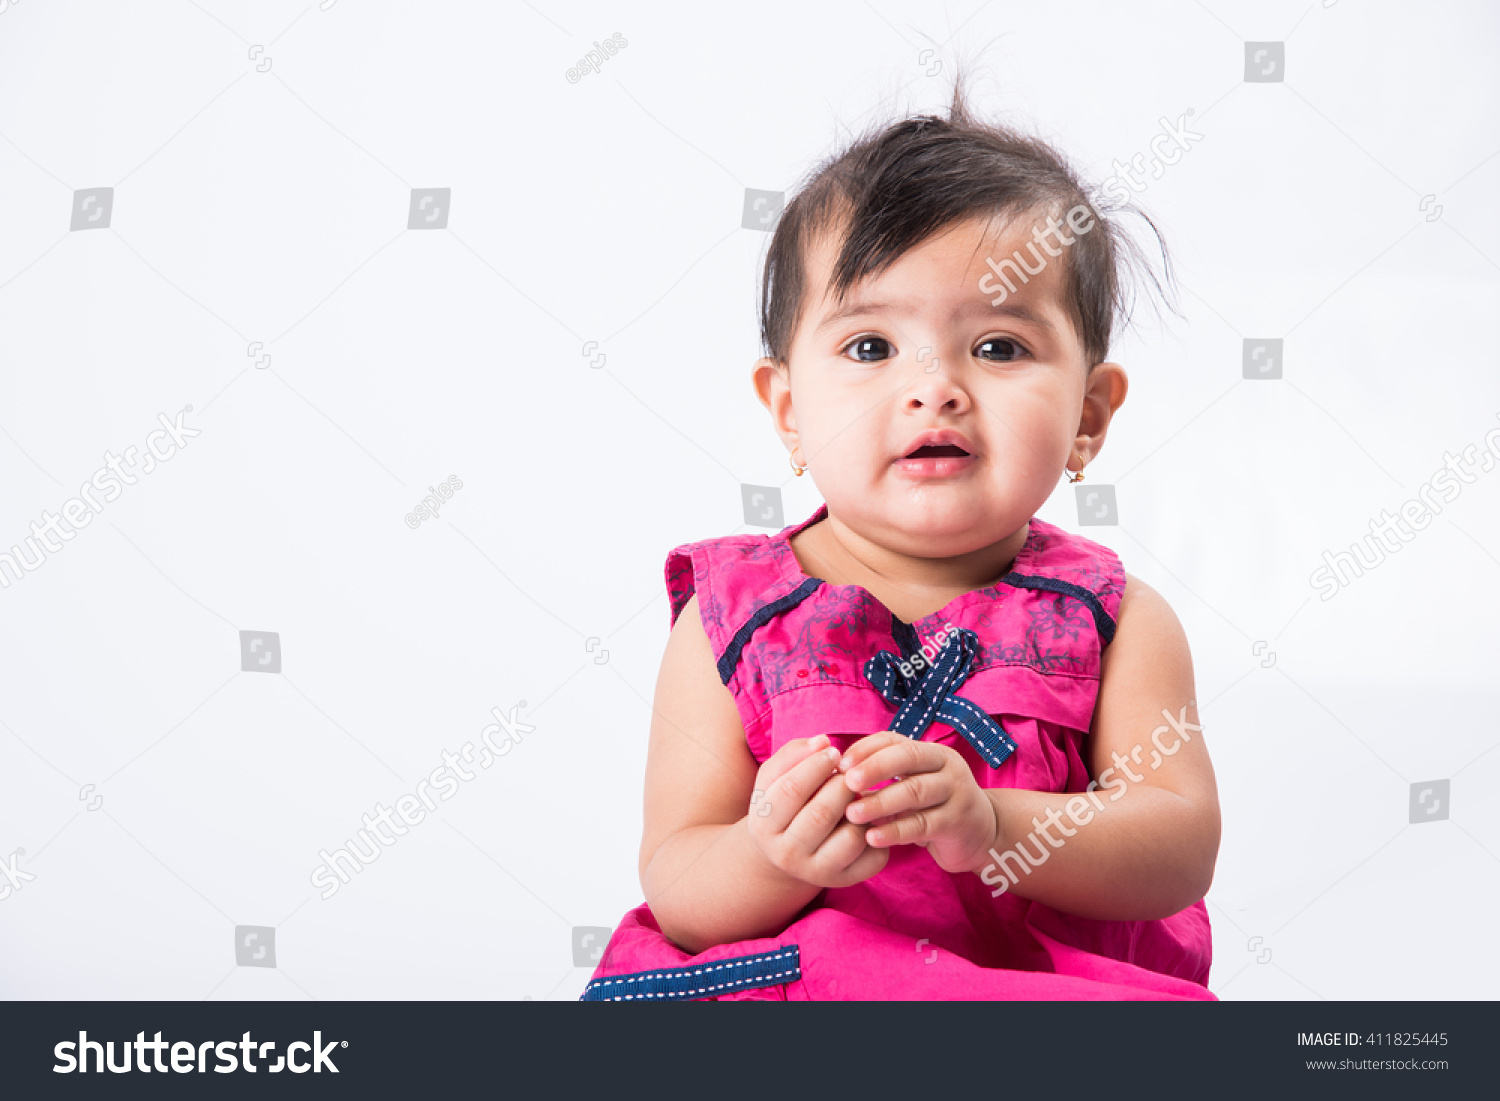 royalty-free portrait of cute indian baby girl,… #411825445 stock